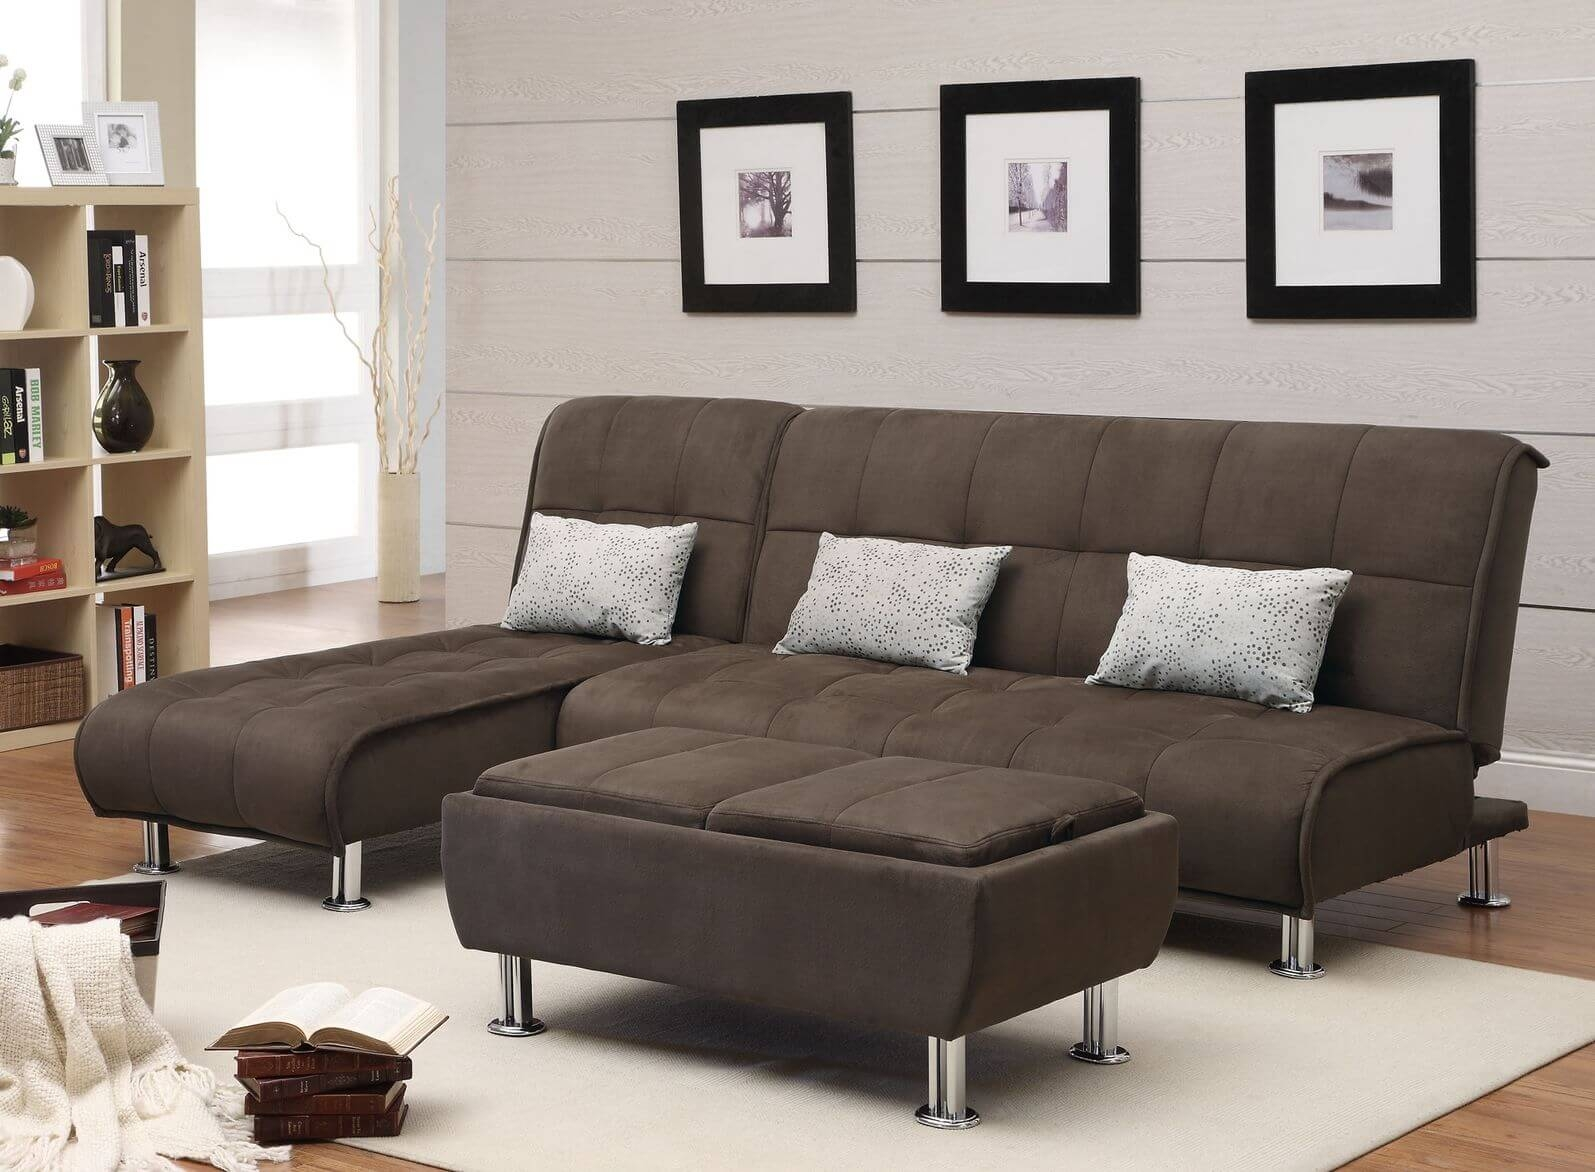 50 Beautiful Living Rooms With Ottoman Coffee Tables Within Coffee Table For Sectional Sofa With Chaise (Image 1 of 15)